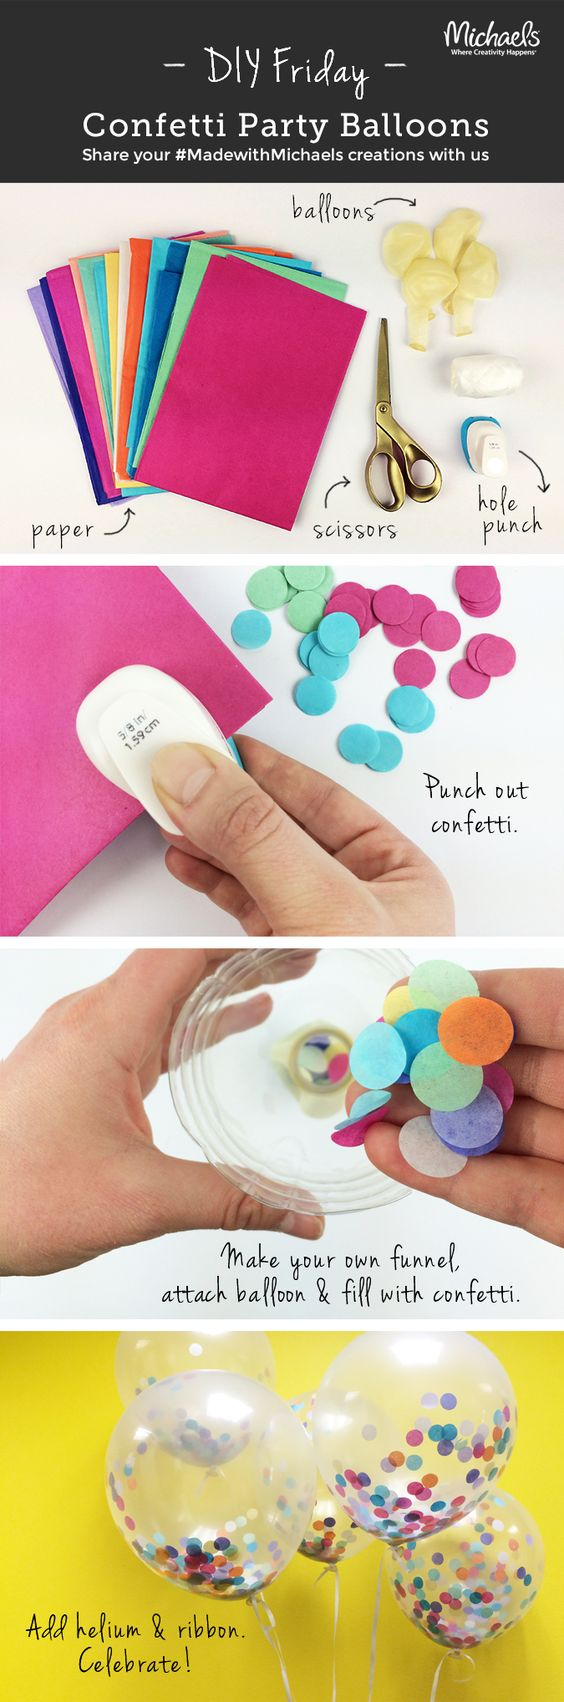 Add a pop of color to any party with these #DIYFriday Confetti Balloons! Make in just a few easy steps!: